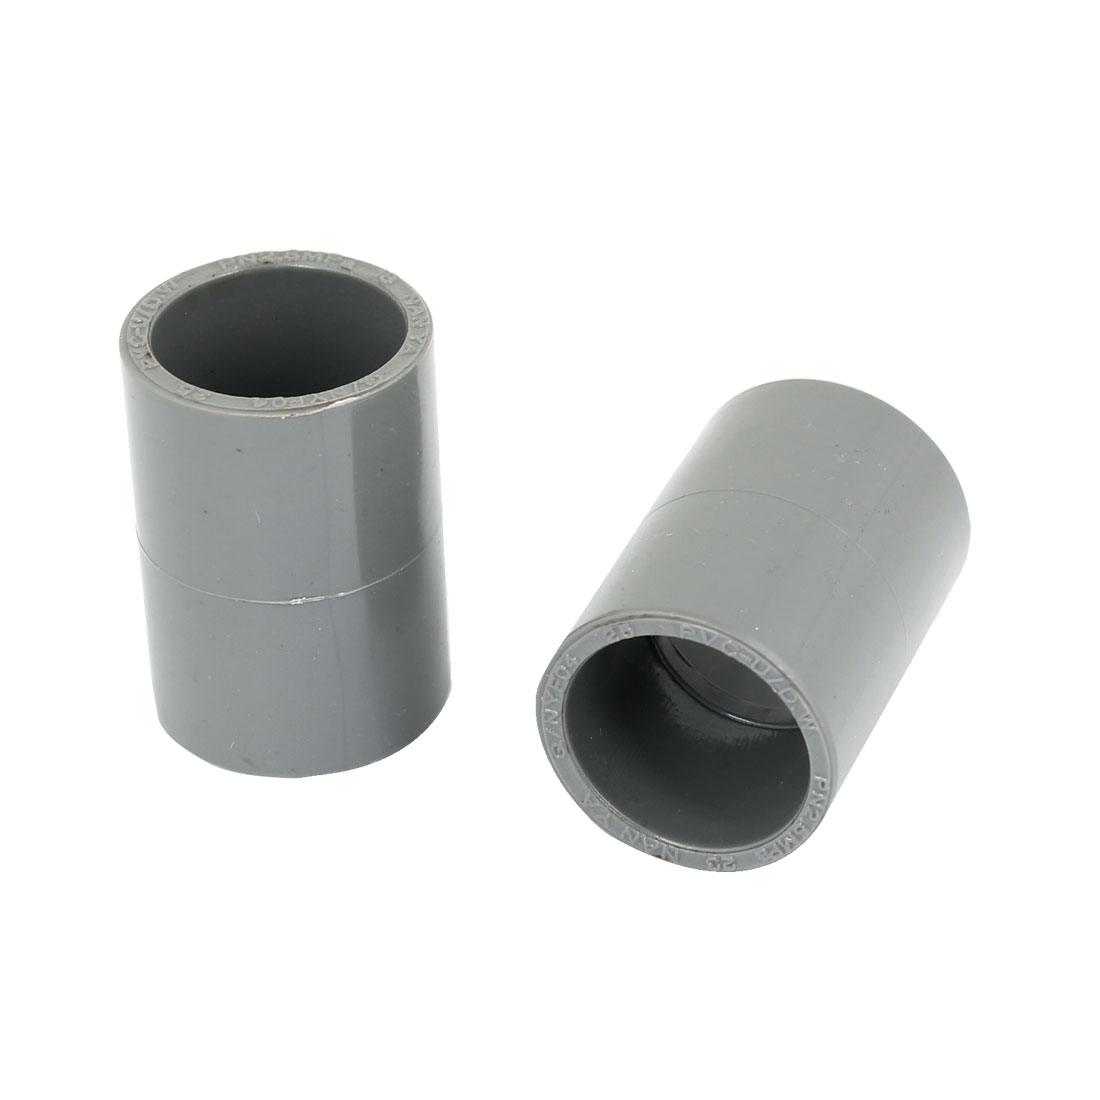 2PCS Replacement 25mm Inner Diameter PVC Straight Pipe Connectors Gray